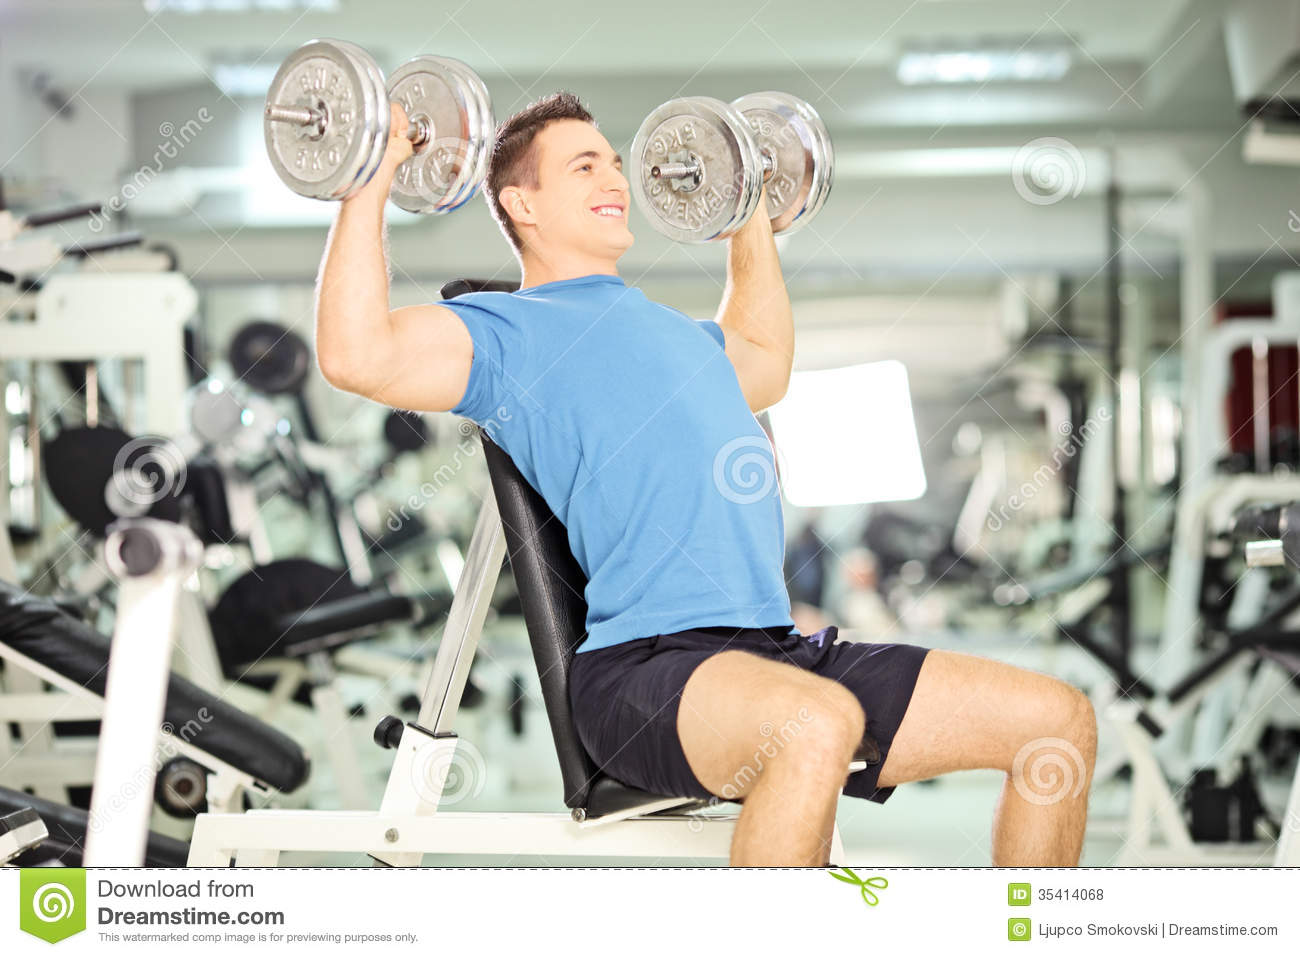 Smiling muscular guy lifting weights in gym club stock for Club gimnasio